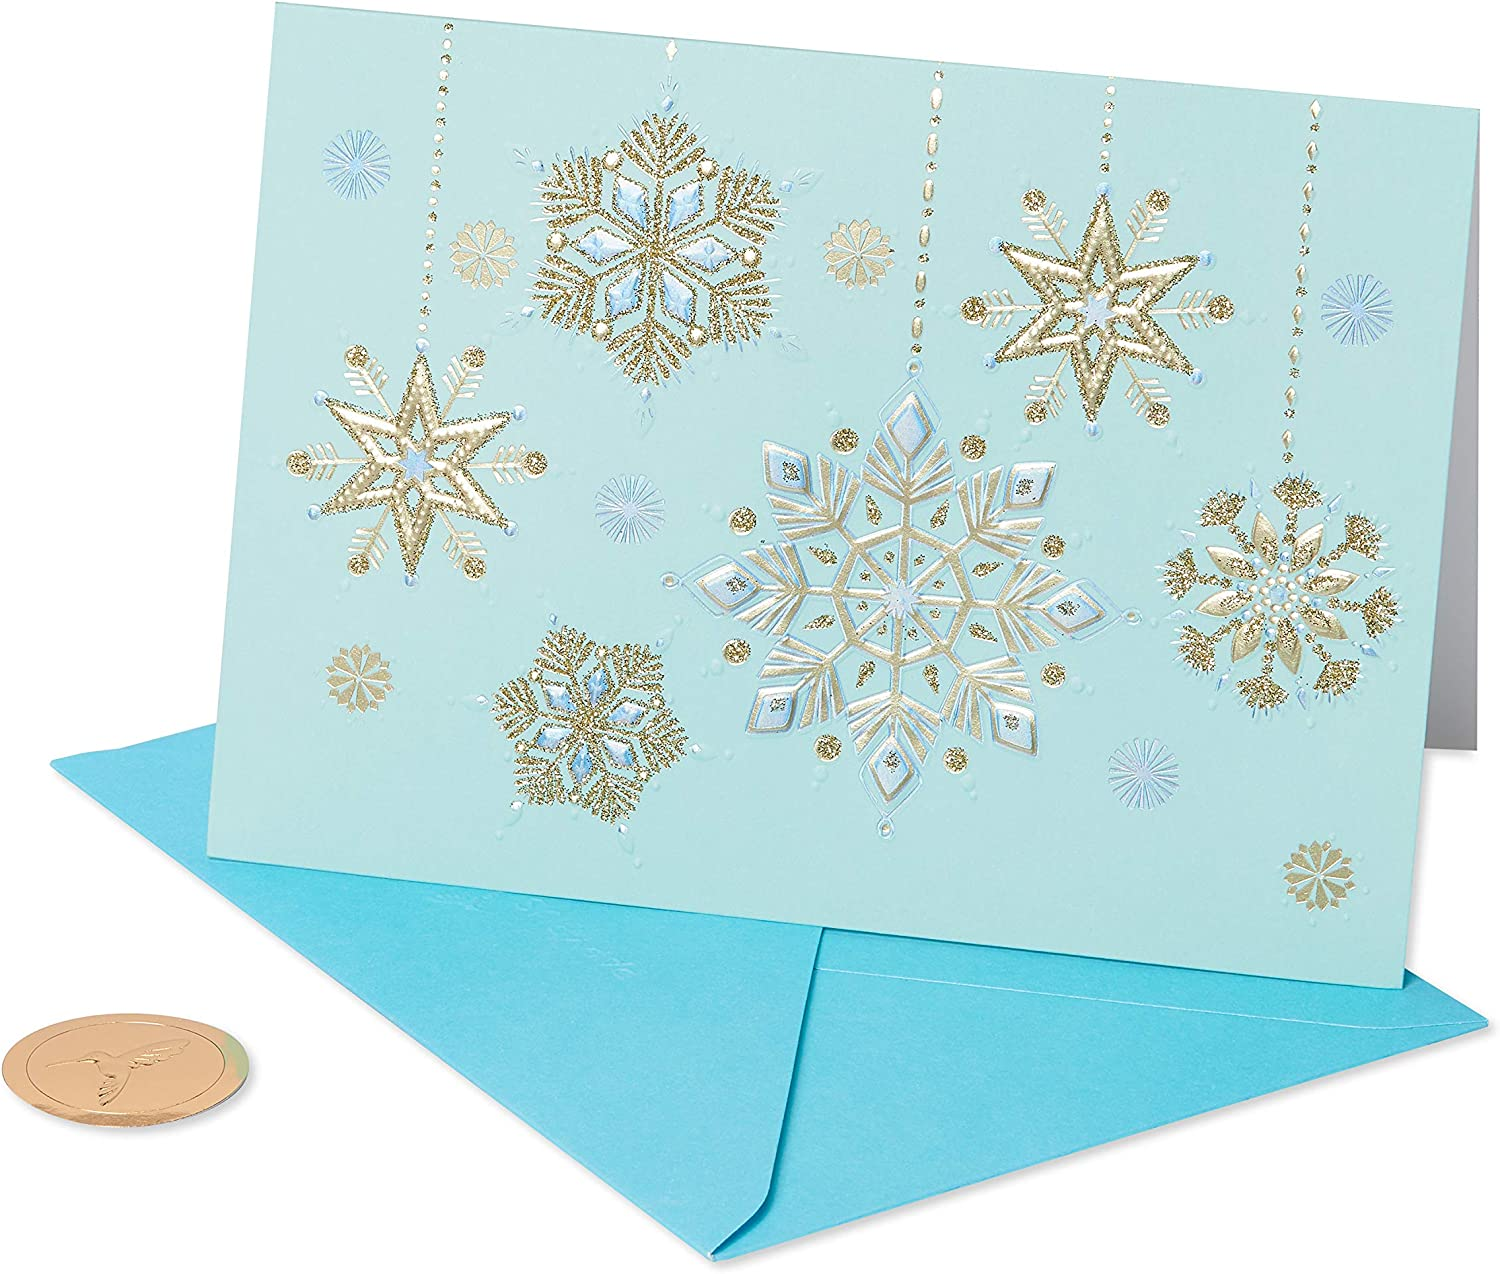 Snowflake Christmas Light Up Card Making Kit Pkg of 2